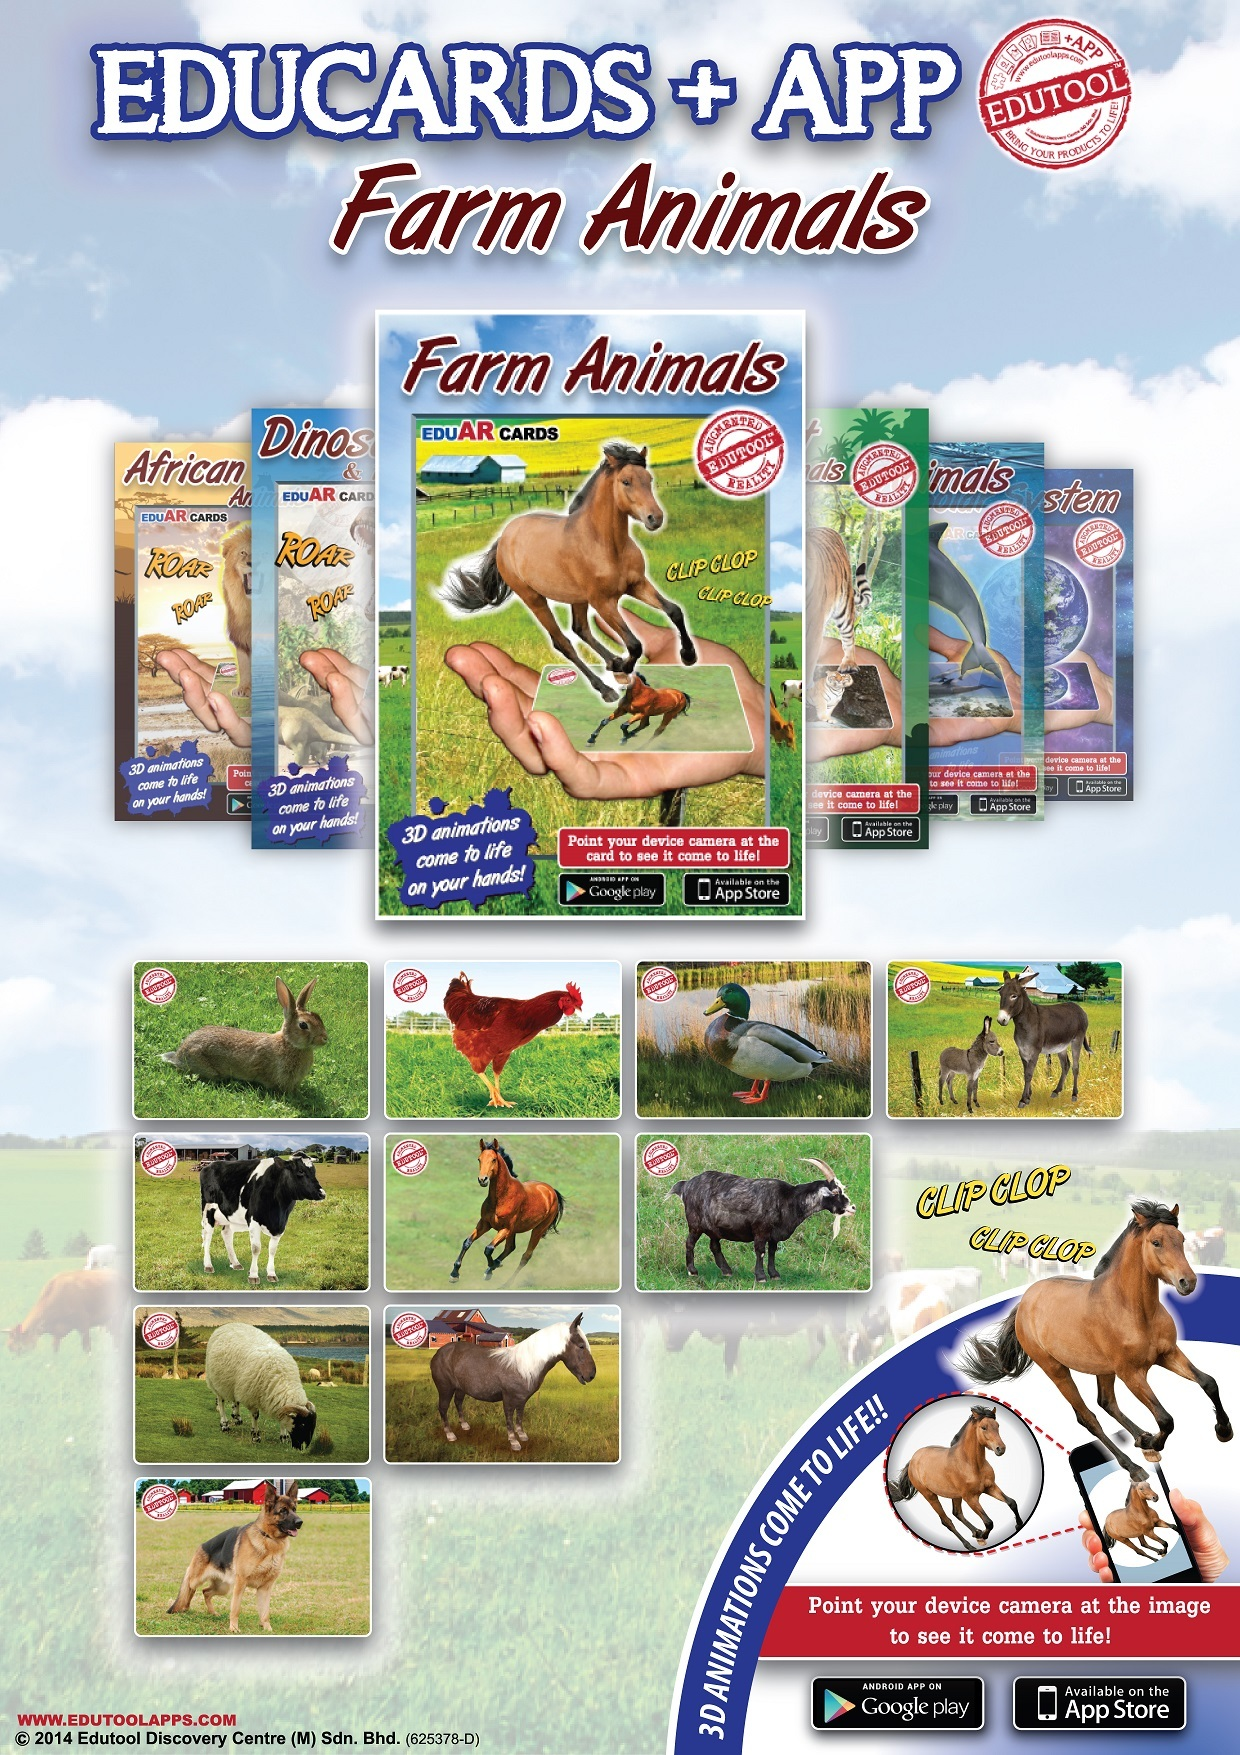 EduCards Farm Animals Catalog.jpg